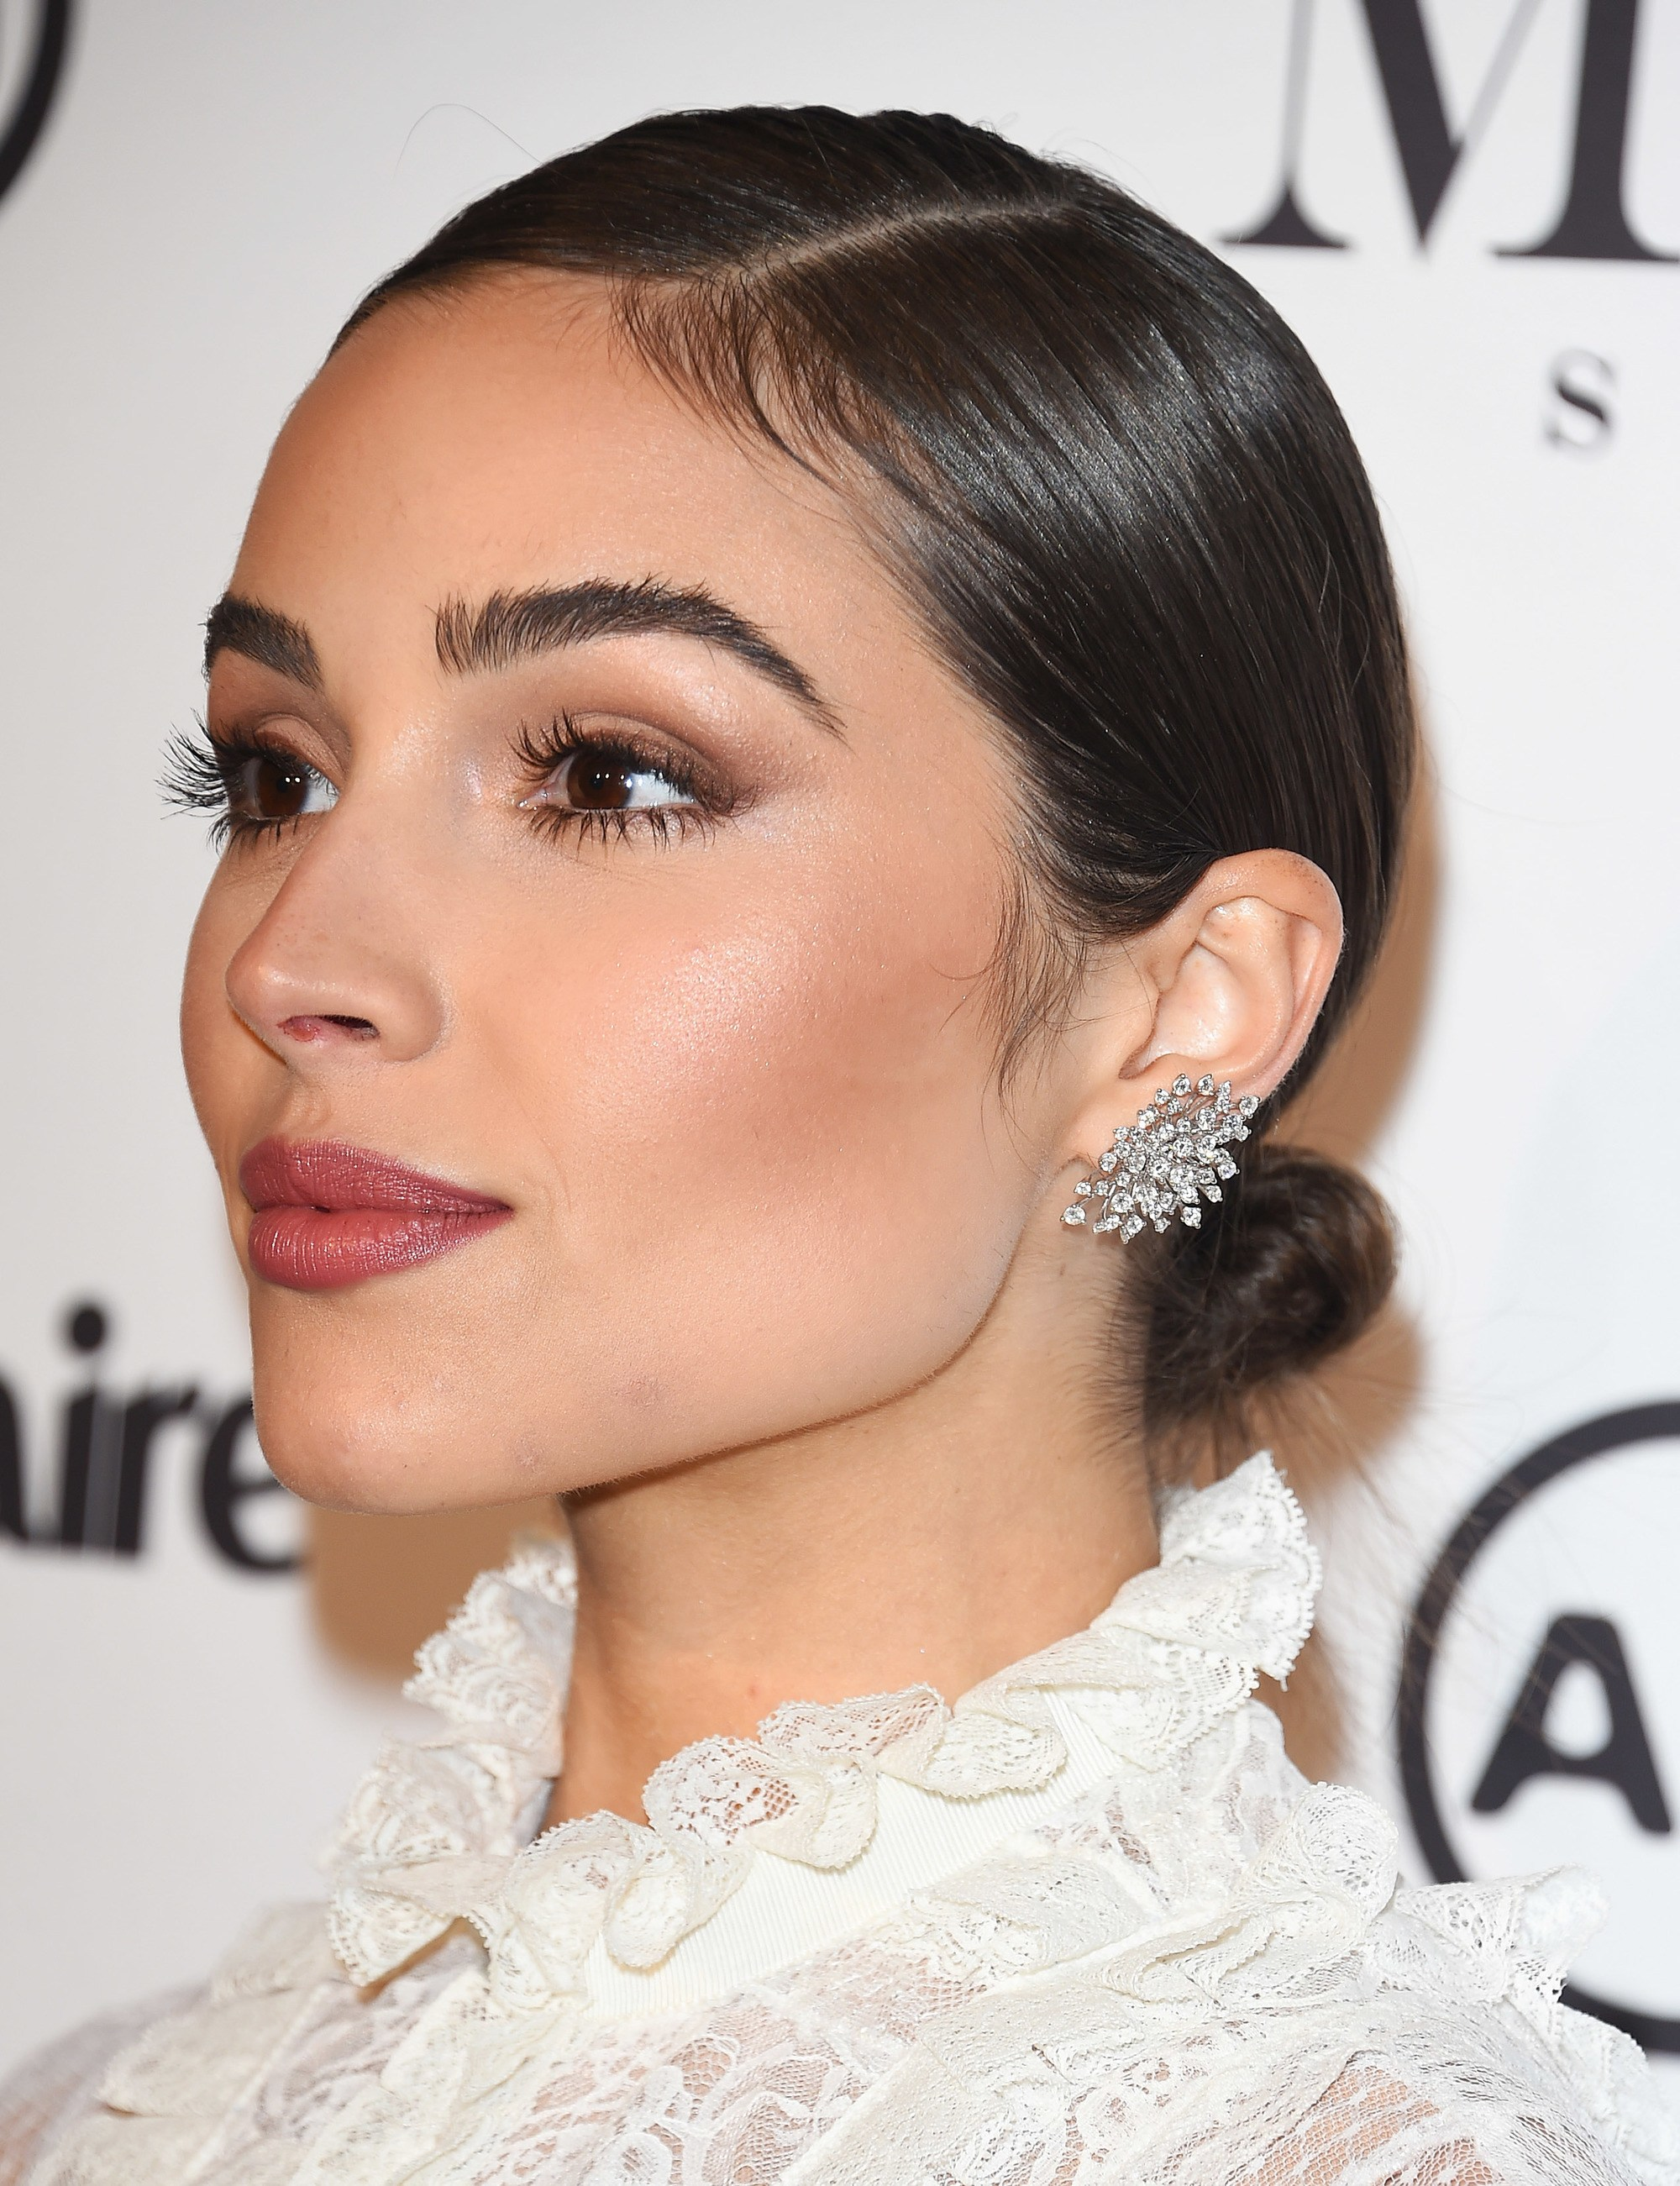 Formal hairstyles for short hair: Close-up of Olivia Culpo with dark glossy short hair in a side-parted low mini bun